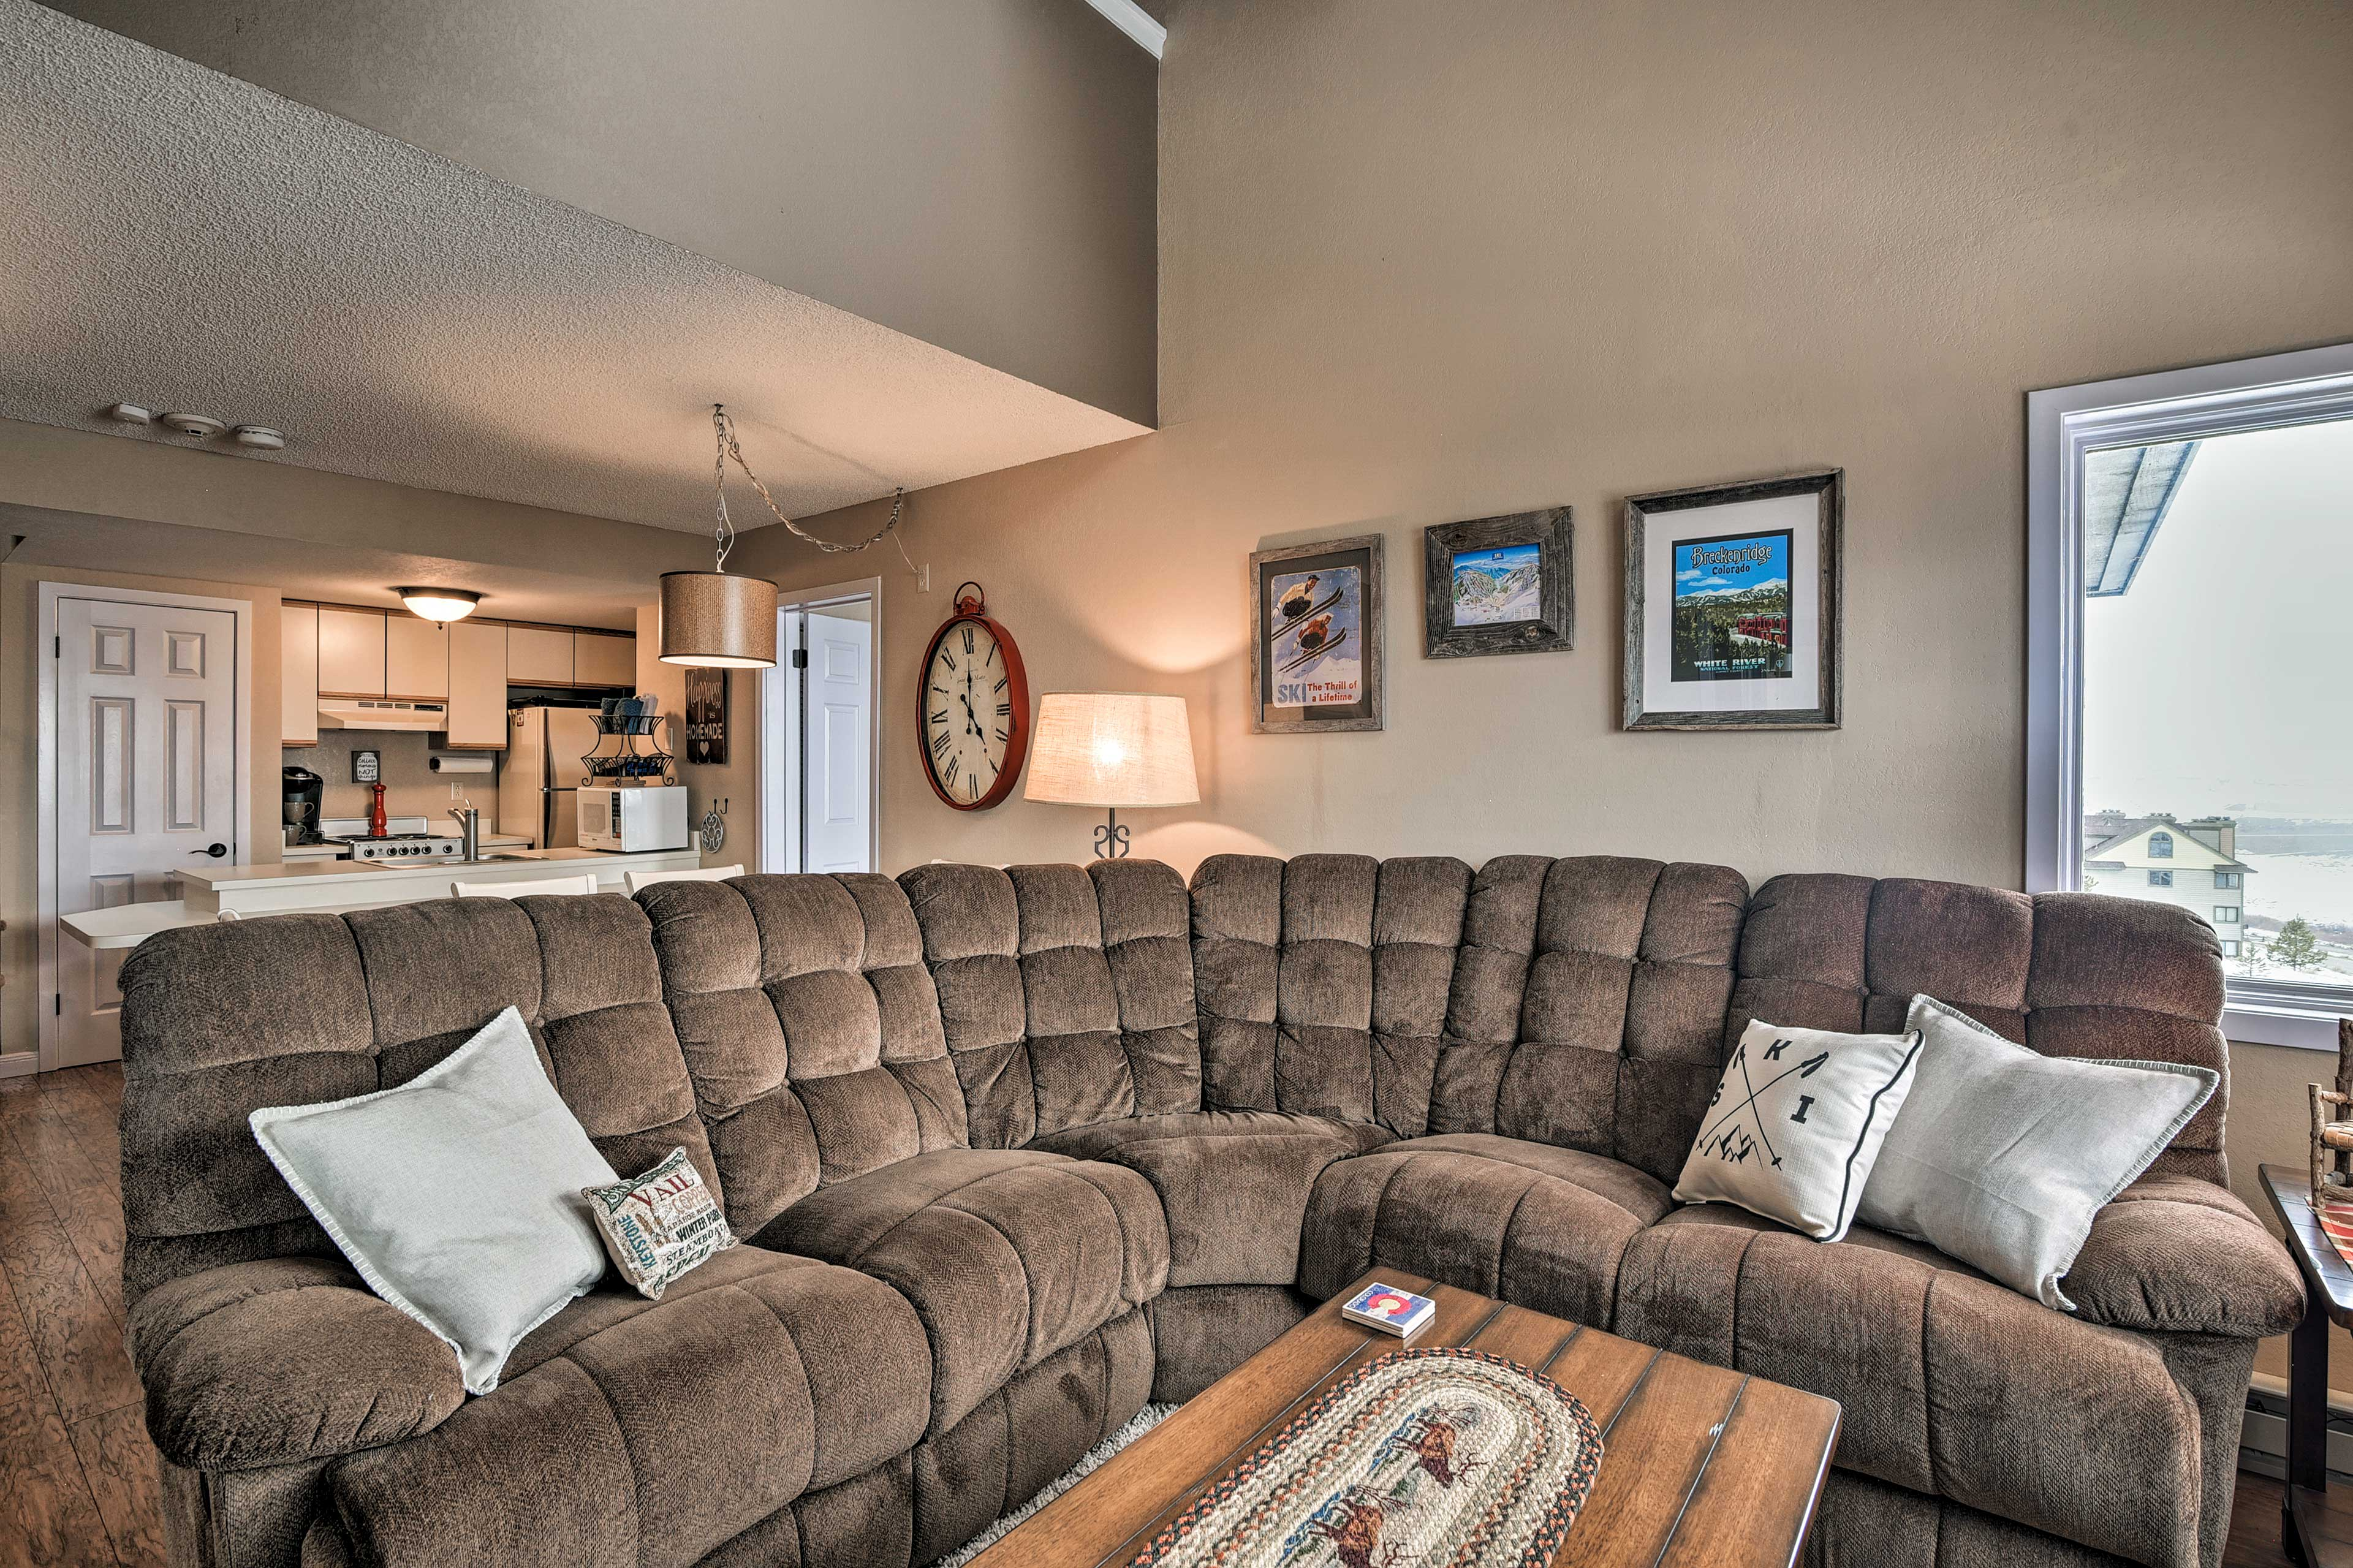 Give your sore skiing muscles a break with a nap on the sectional sofa!